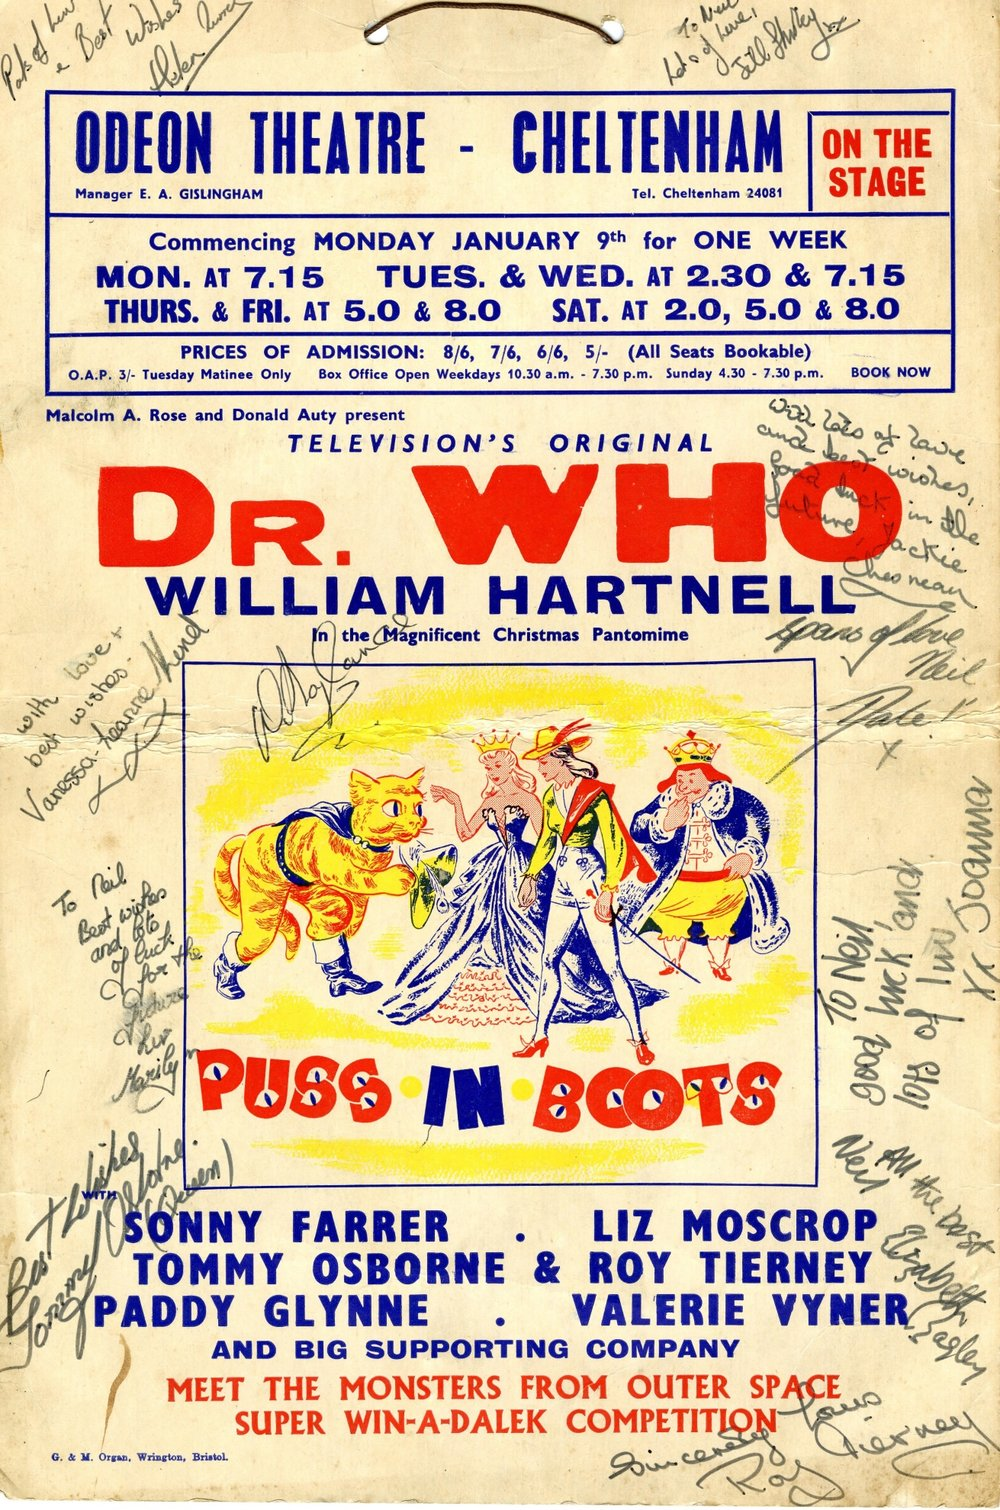 Playbill for the Puss in Boots pantomime signed by the cast (excluding William Hartnell)